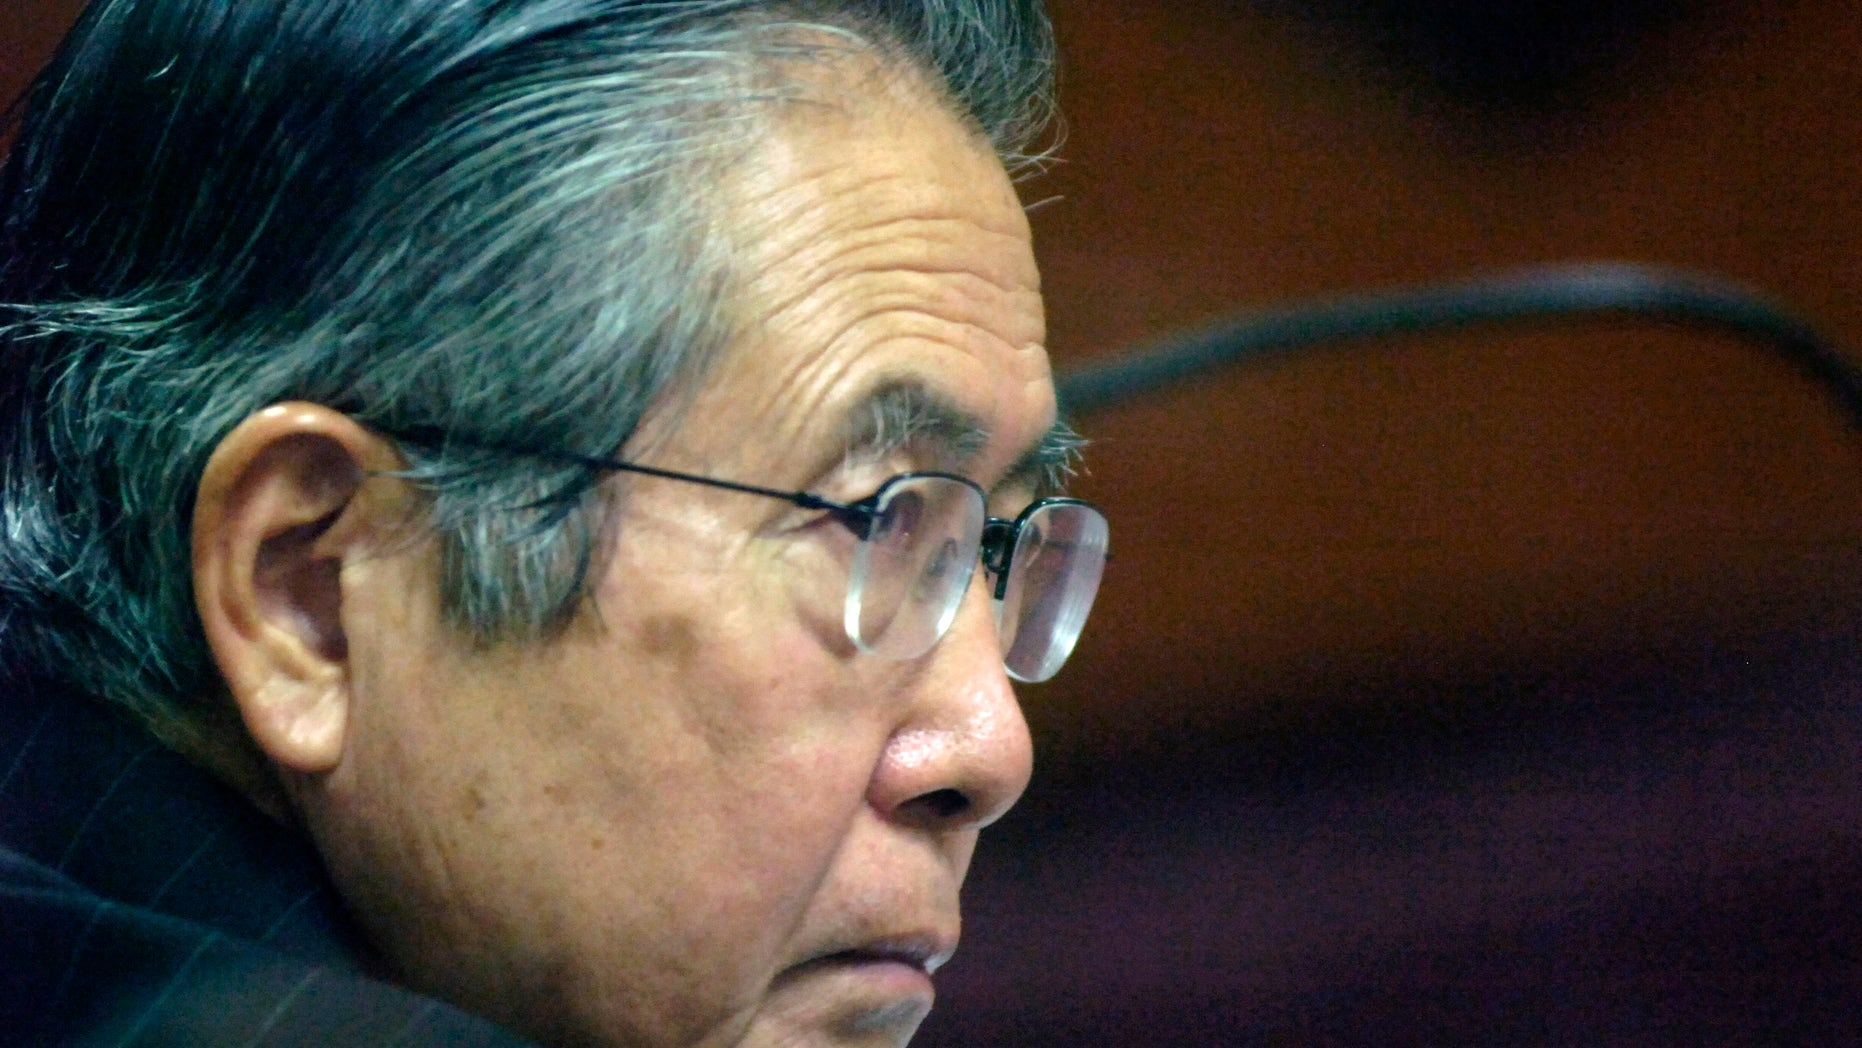 FILE - In this Jan. 23, 2008 file photo, Peru's former President Alberto Fujimori attends a session of his trial at a police base in Lima, Peru. Incarcerated for authorizing death squads and corruption, the former leader is not permitted to give interviews or make public statements. Yet he has 10,000 Twitter followers three weeks after opening an account, and he's used YouTube three times to make short audio statements, setting off a media sensation in Peru as he rallies supporters and trades barbs with political foes. (AP Photo/Karel Navarro, File)